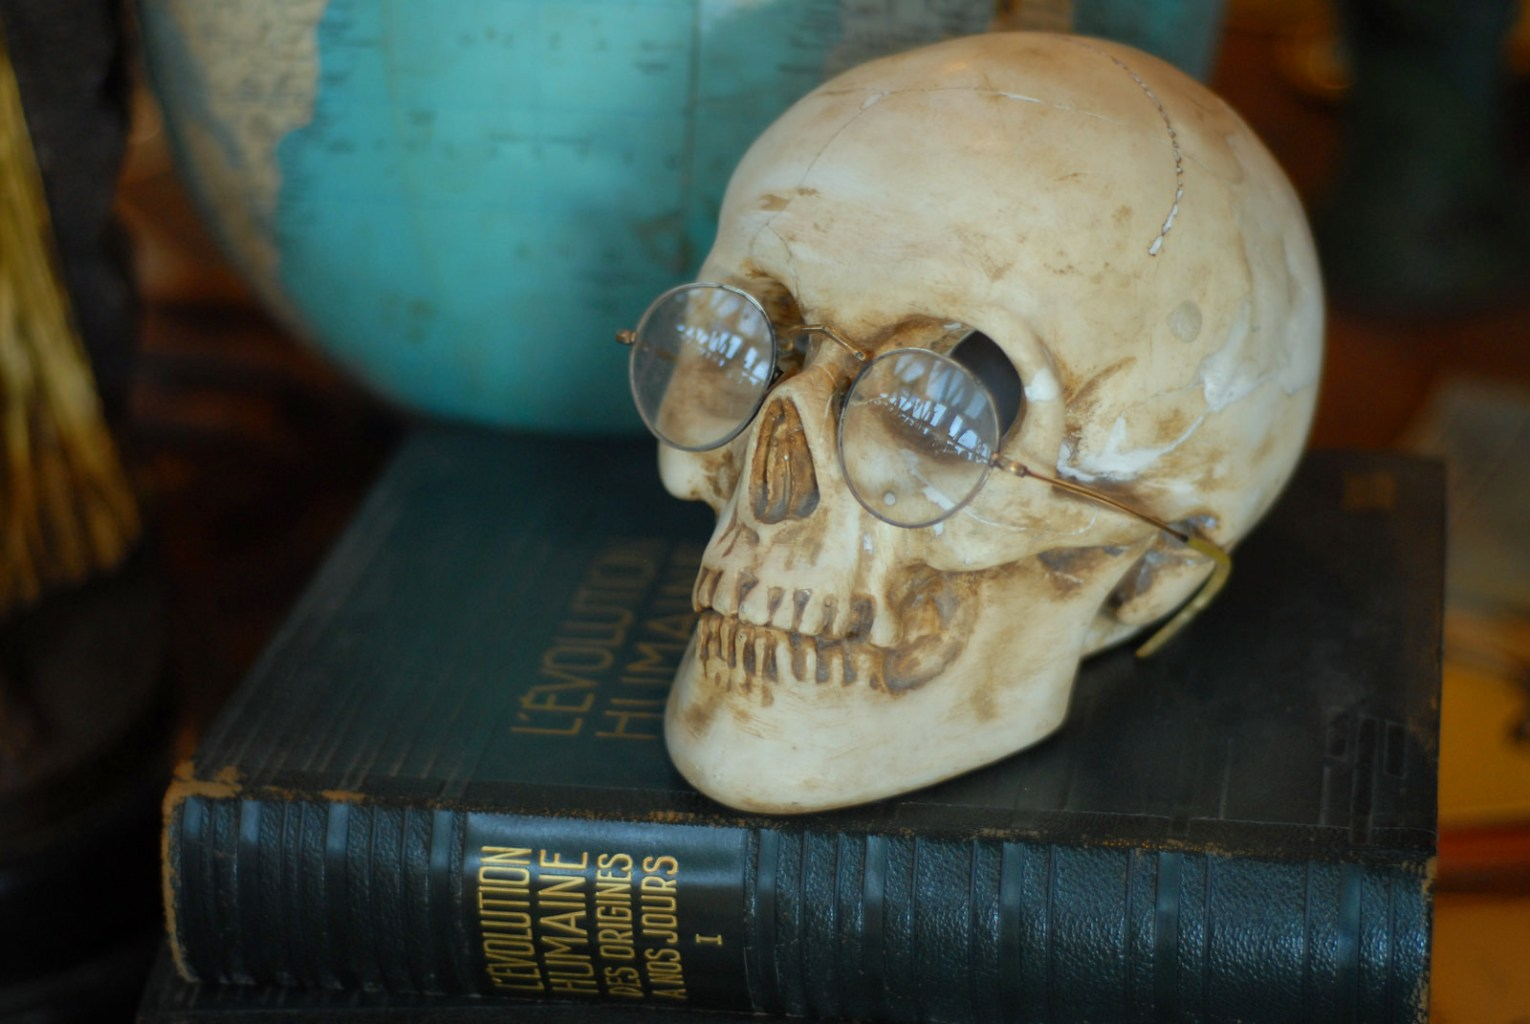 Image: A fake skull sitting on a human evolution book wearing glasses